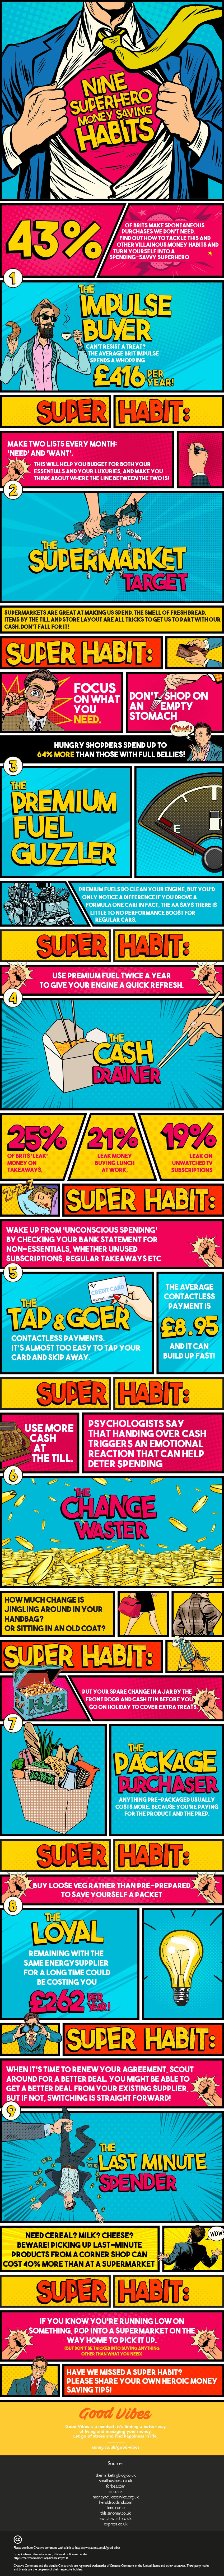 9 Superhero Money Saving Habits #infographic